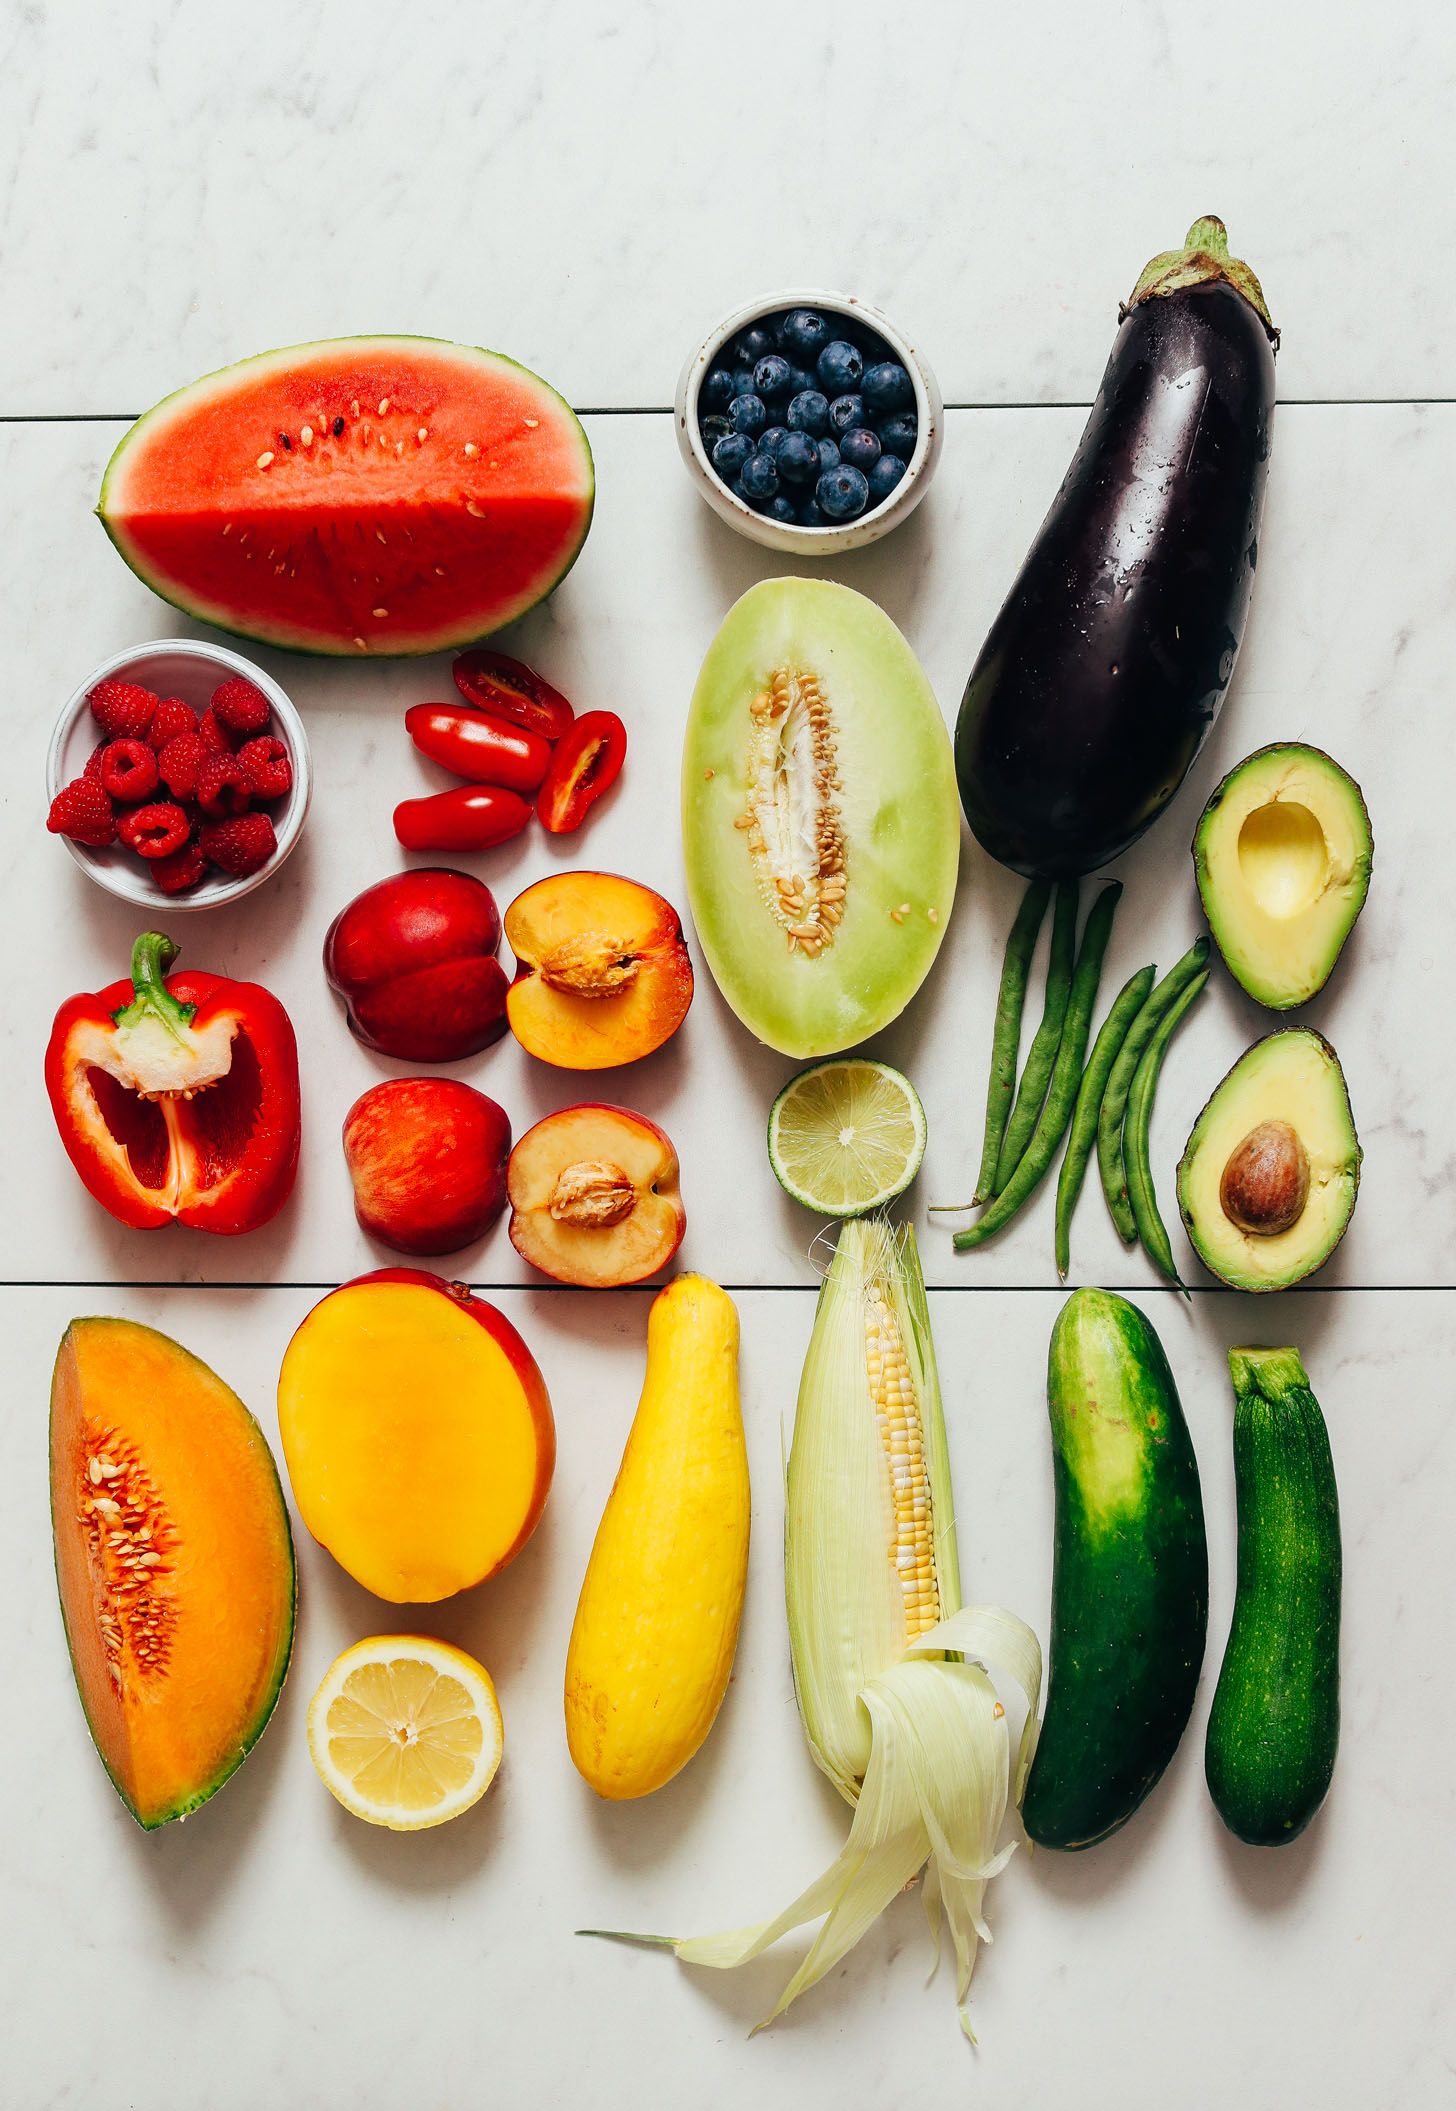 Melons, eggplant, avocado, stone fruit, and assortment of other seasonal produce